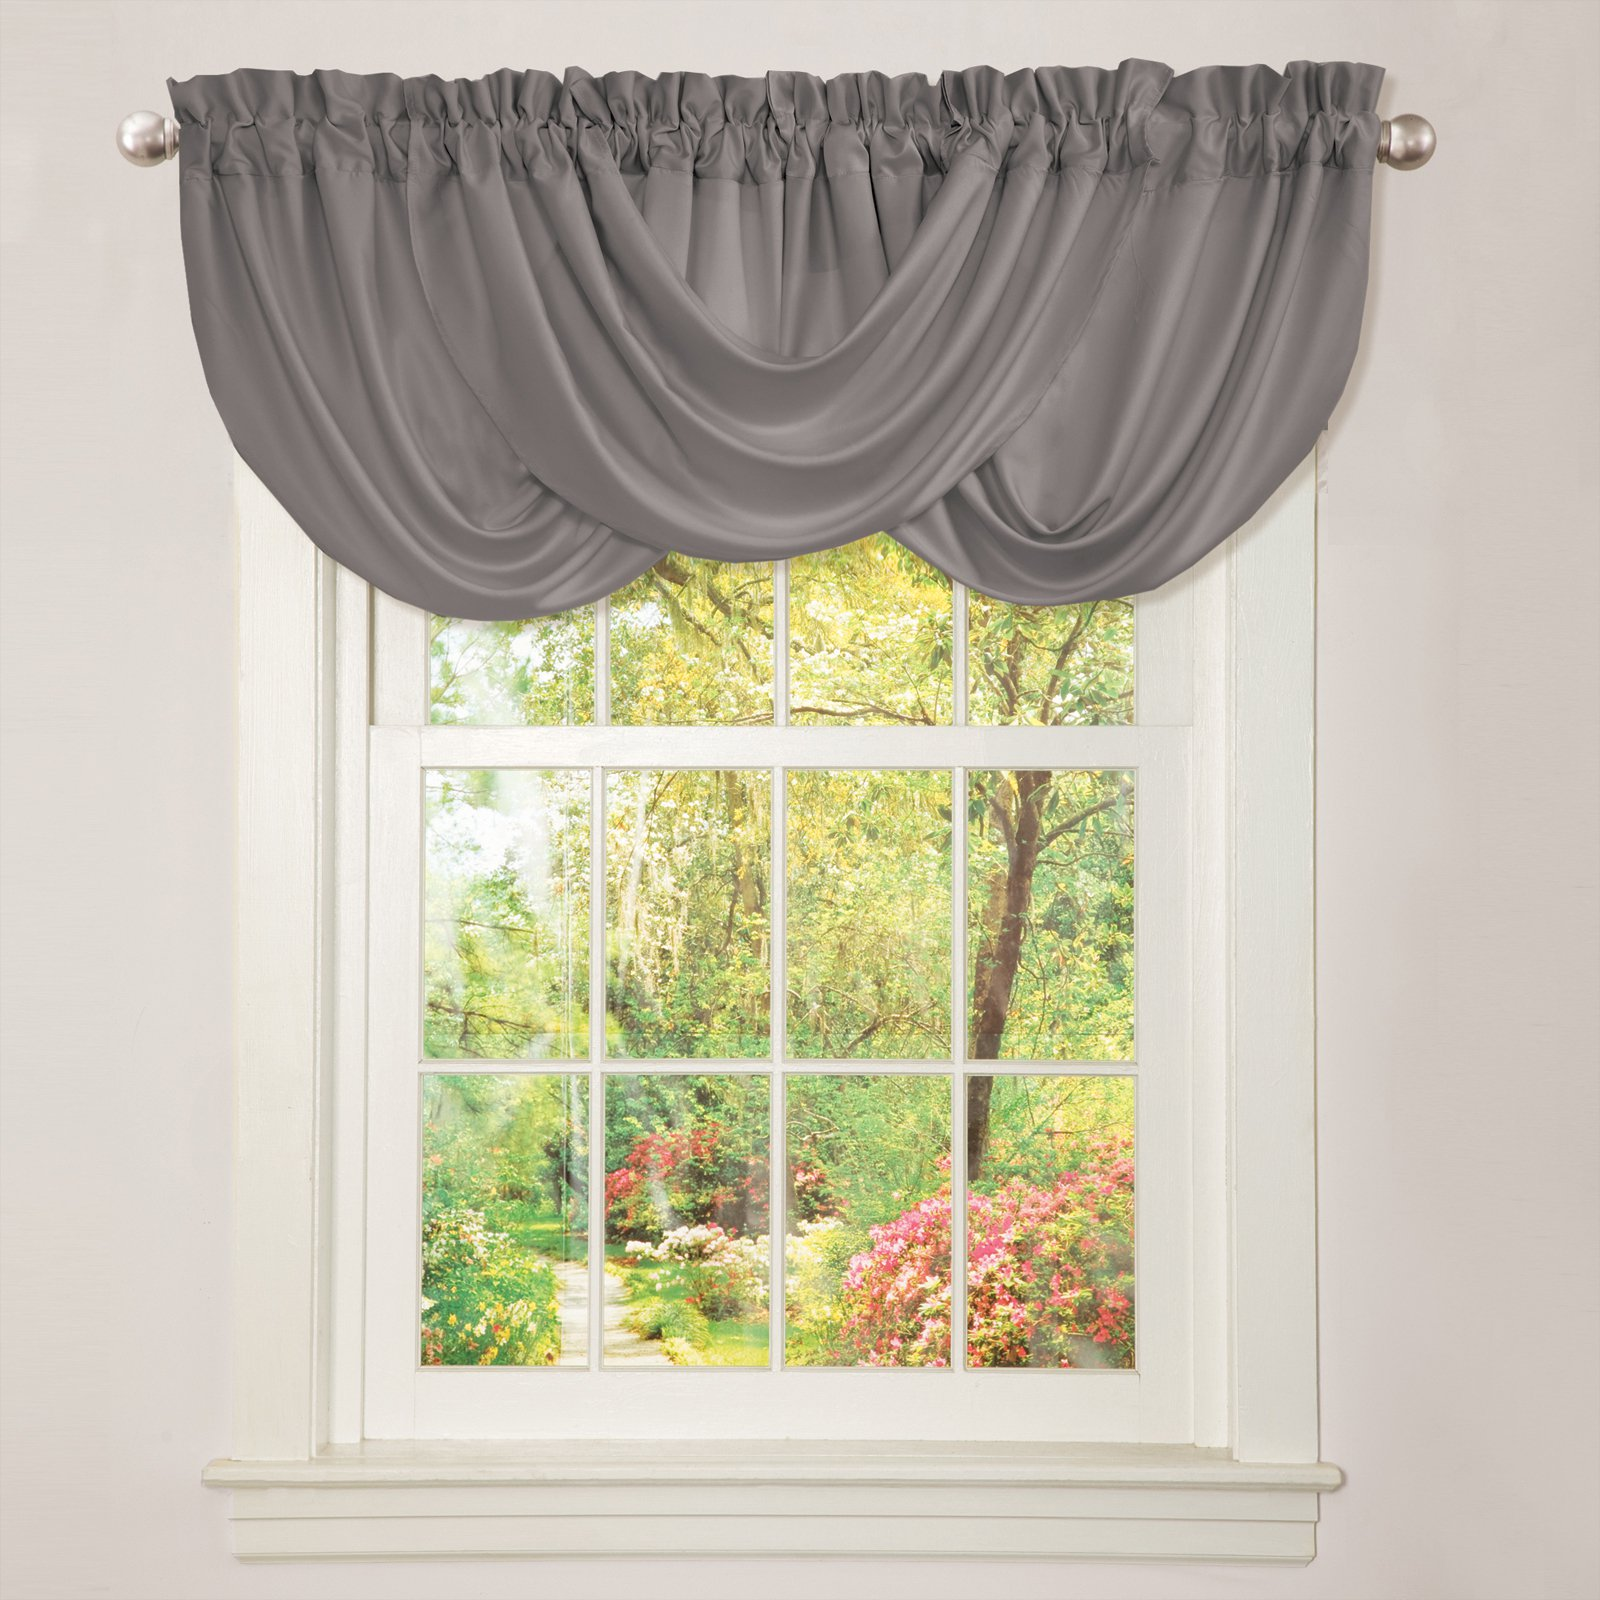 Lush Decor Lucia Curtain Panel Pair with Optional Valance